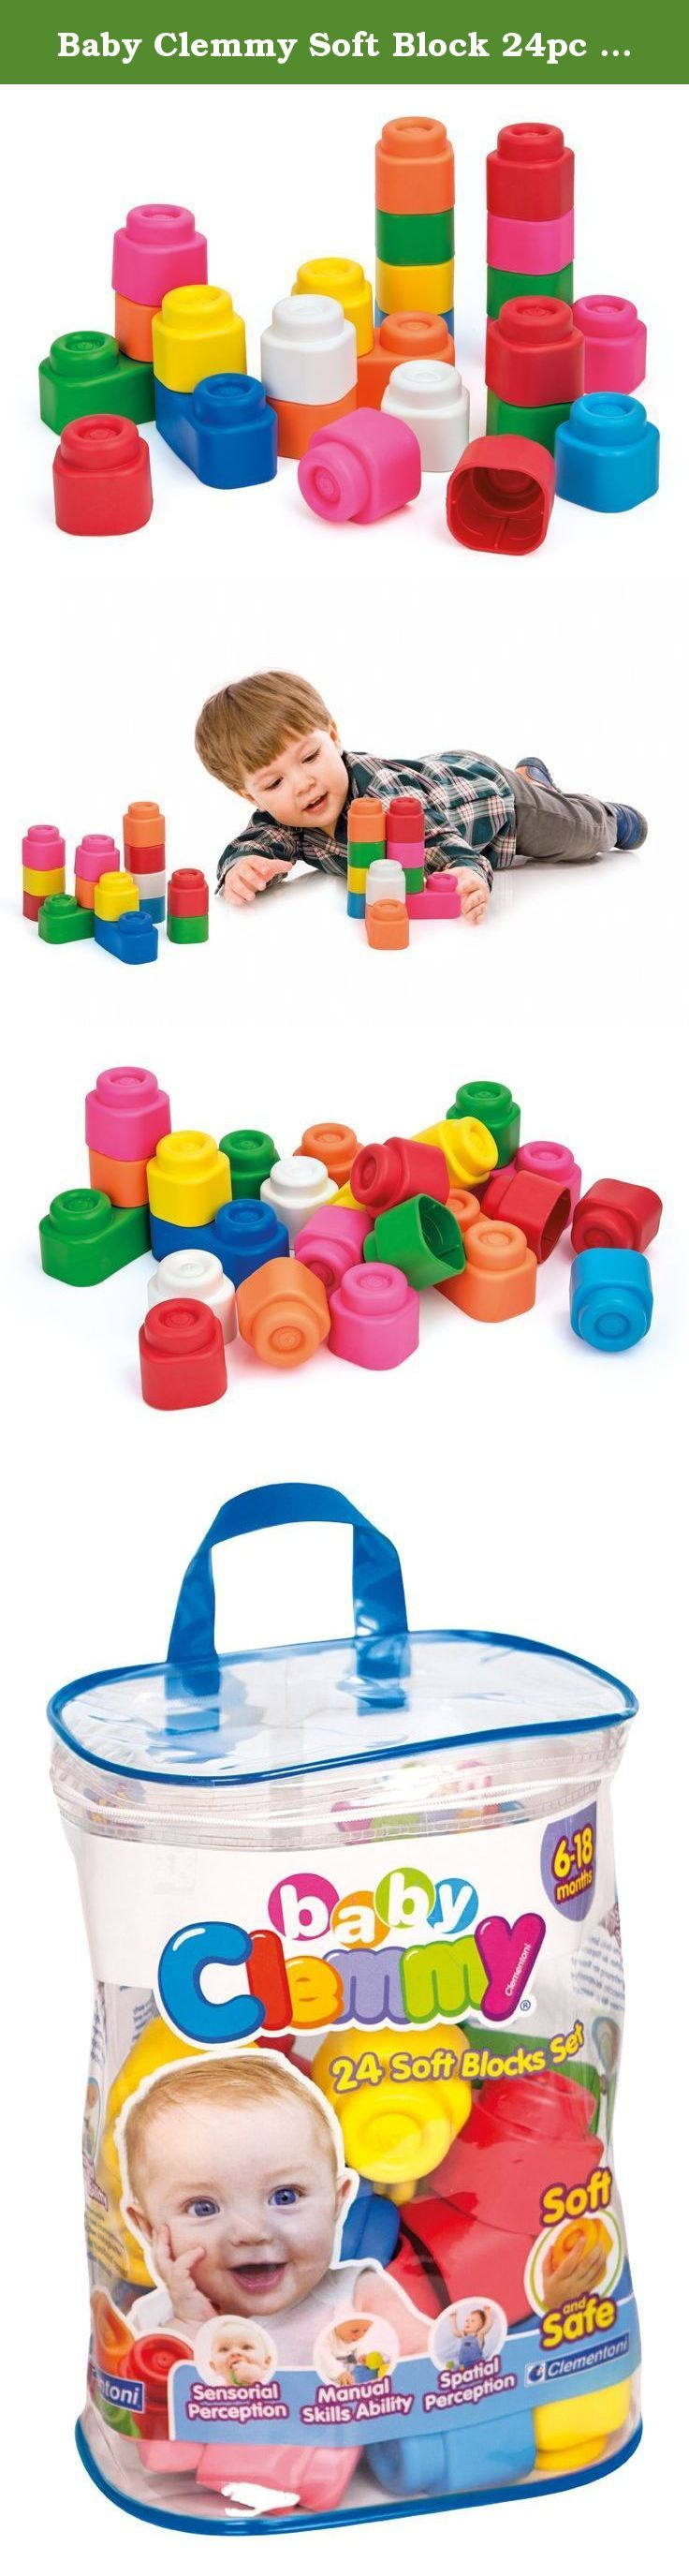 212 best Stacking Blocks Building Toys Toys & Games images on